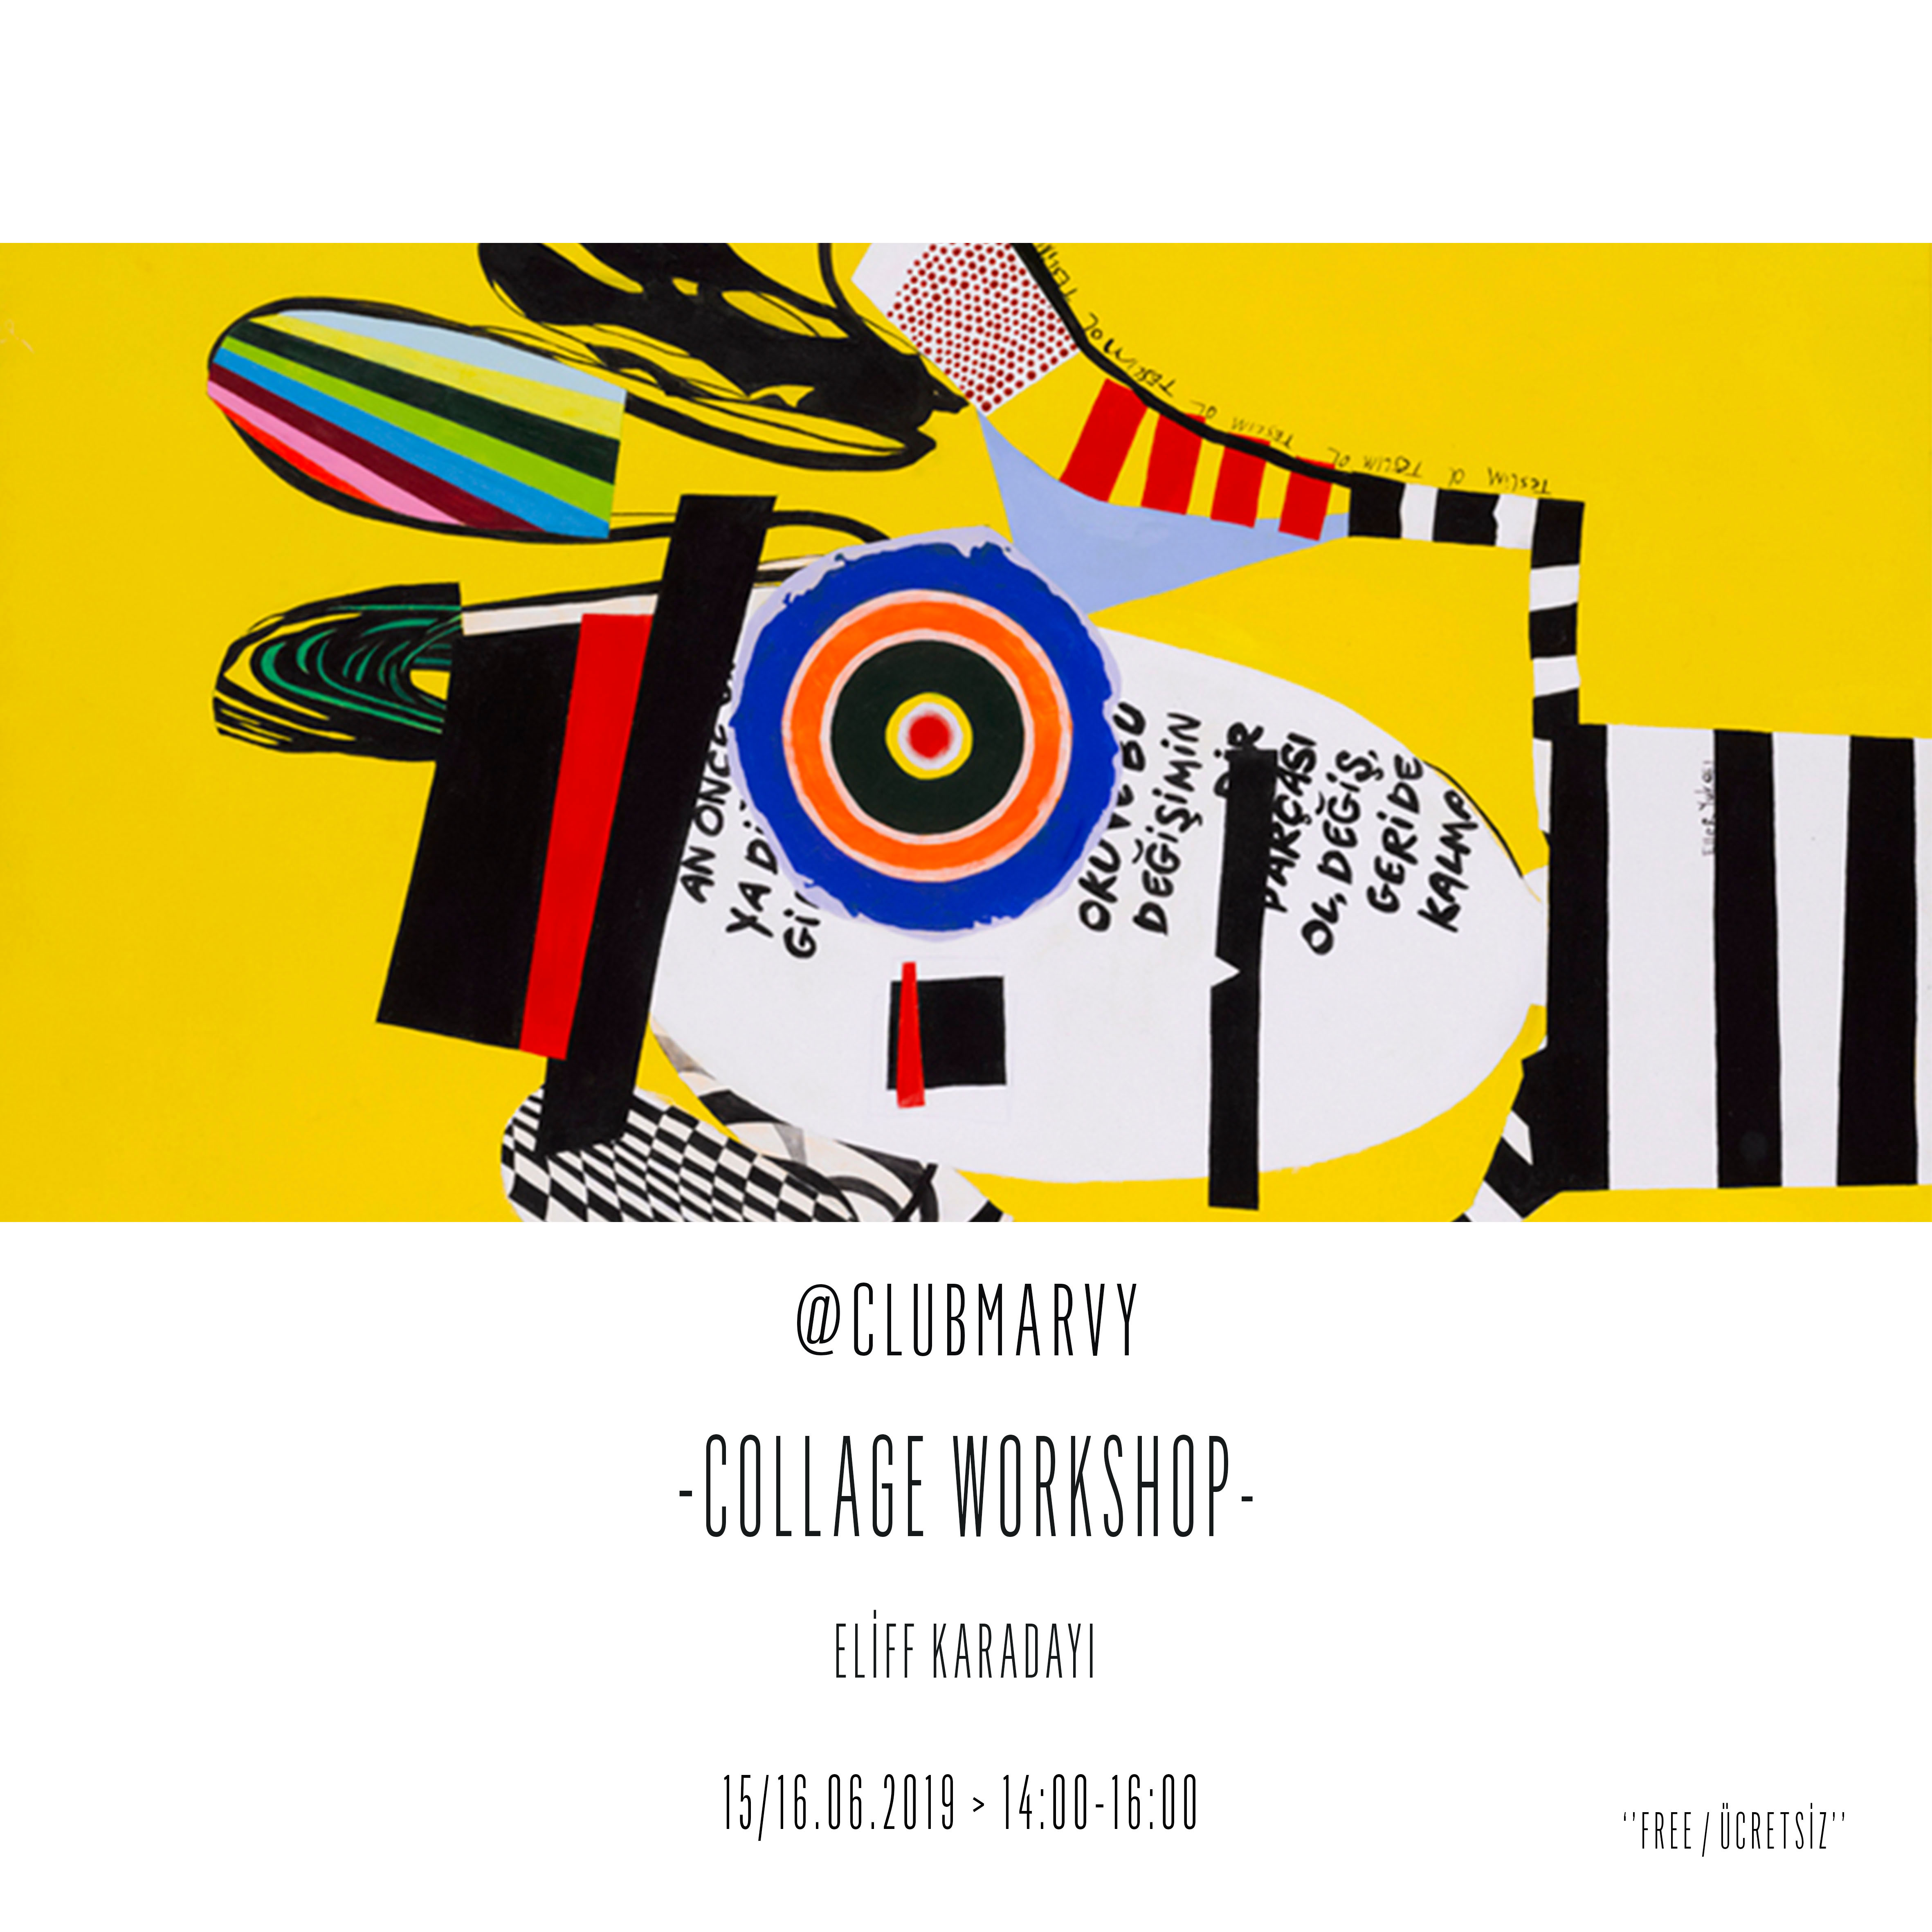 Collage Workshop